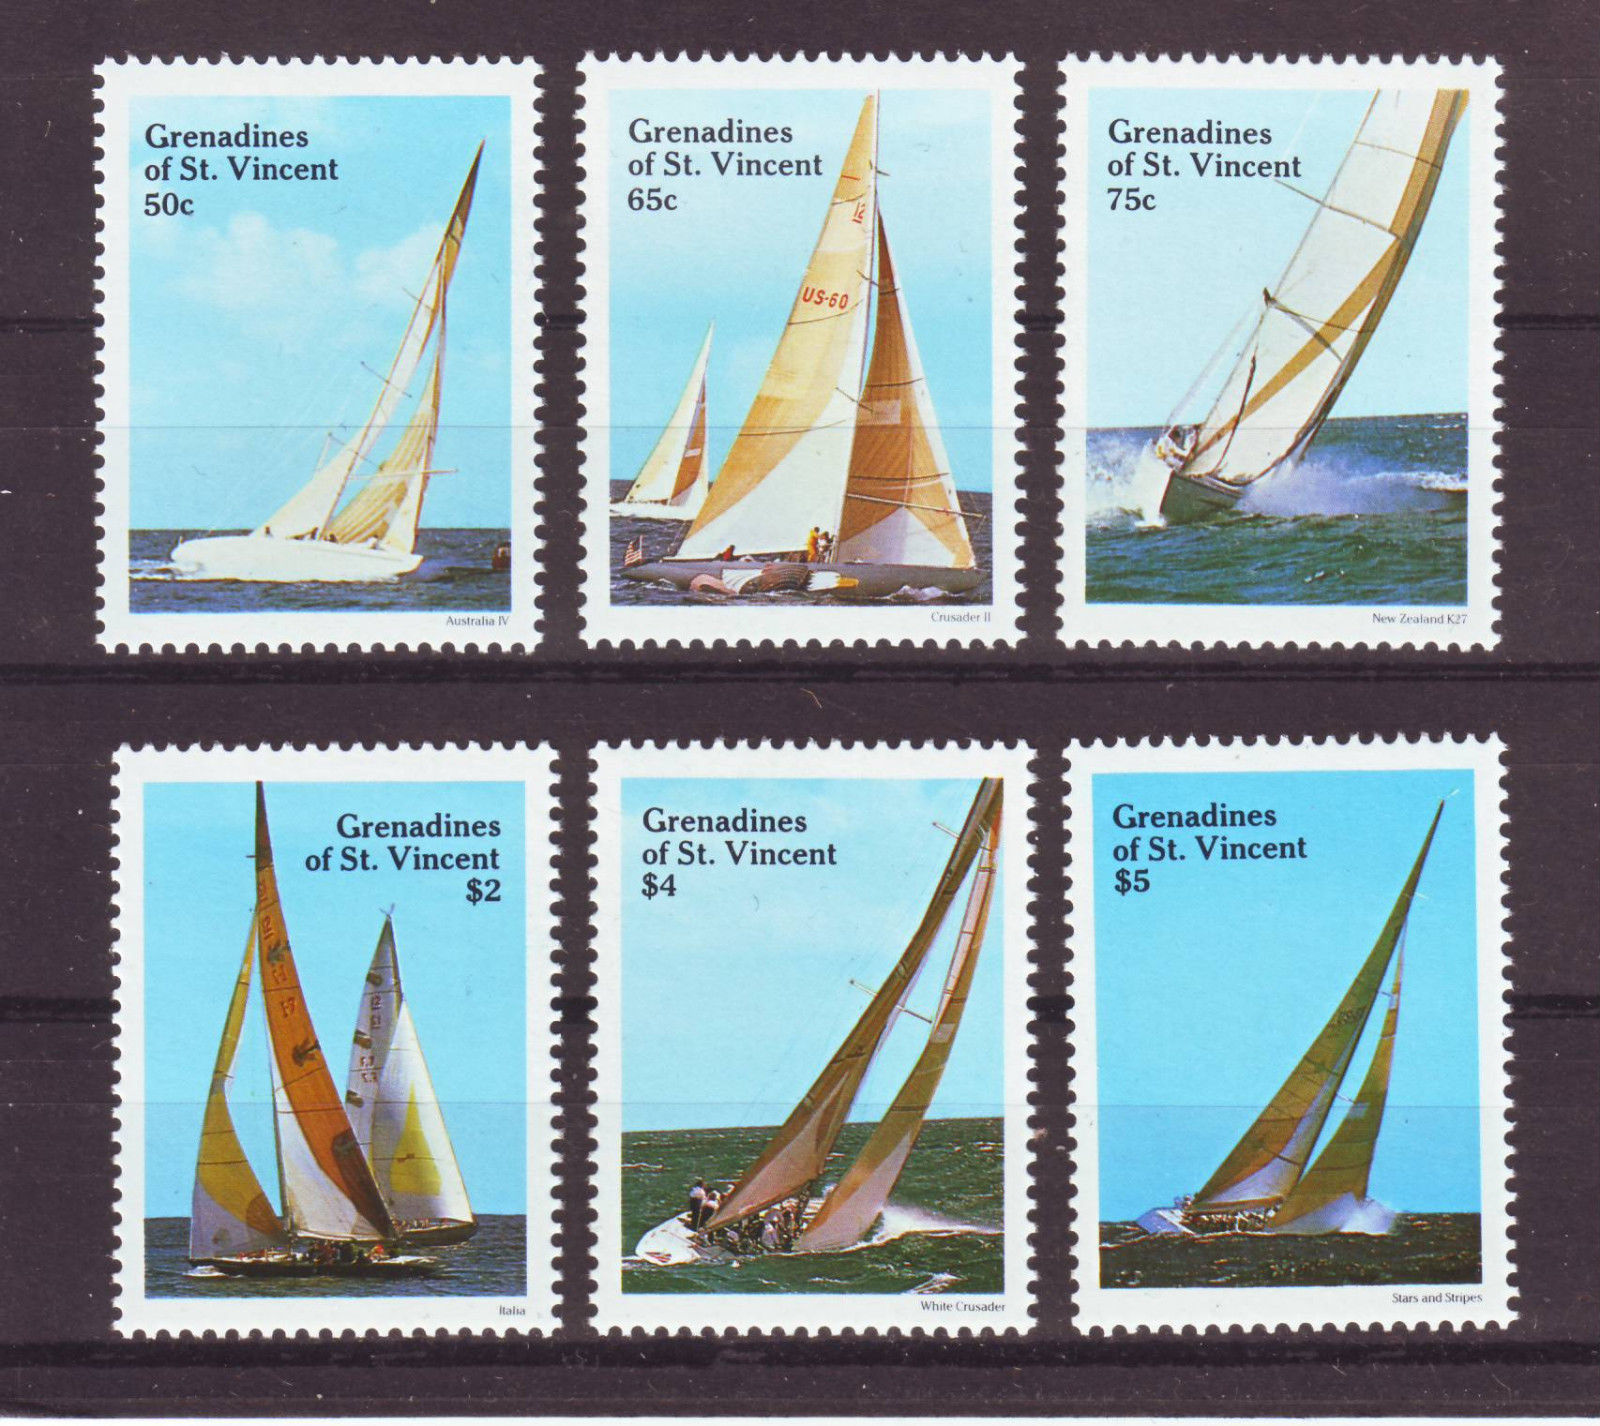 Grenadines of St Vincent 1988 - Navigatie, serie neuzata